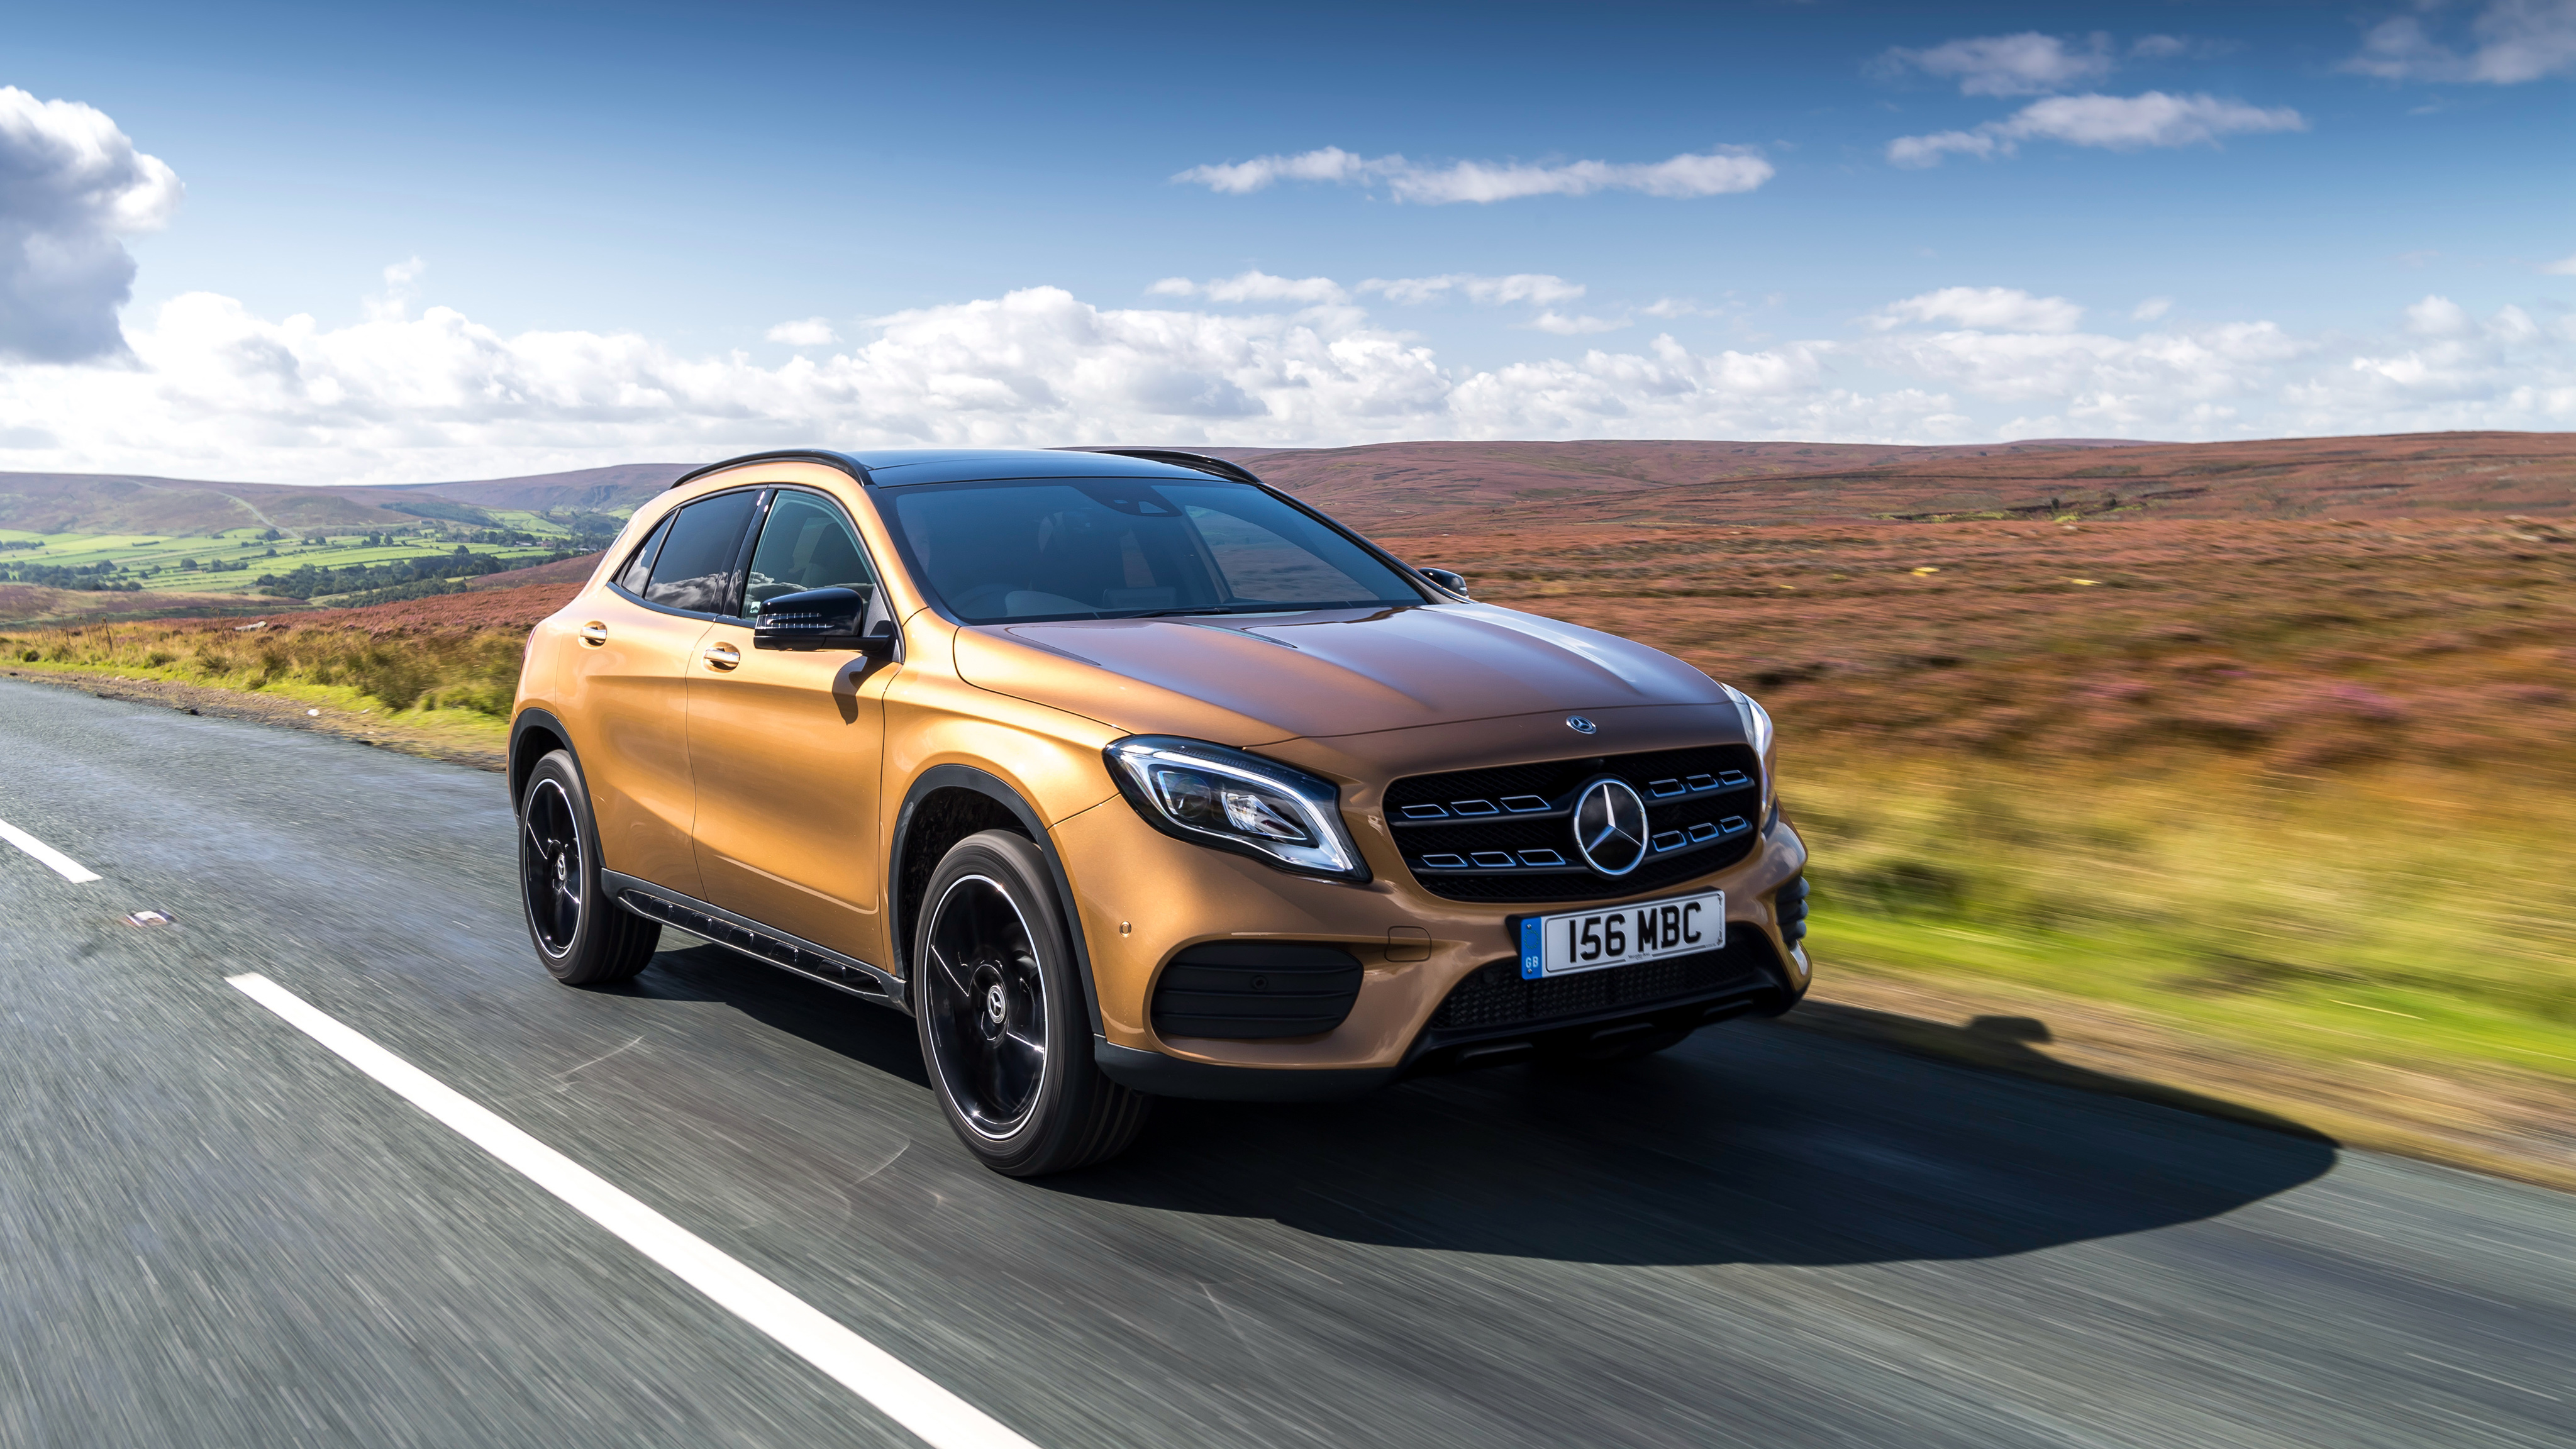 2017 mercedes benz gla 220d 4matic amg line 4k 2 wallpaper hd car wallpapers id 8964. Black Bedroom Furniture Sets. Home Design Ideas